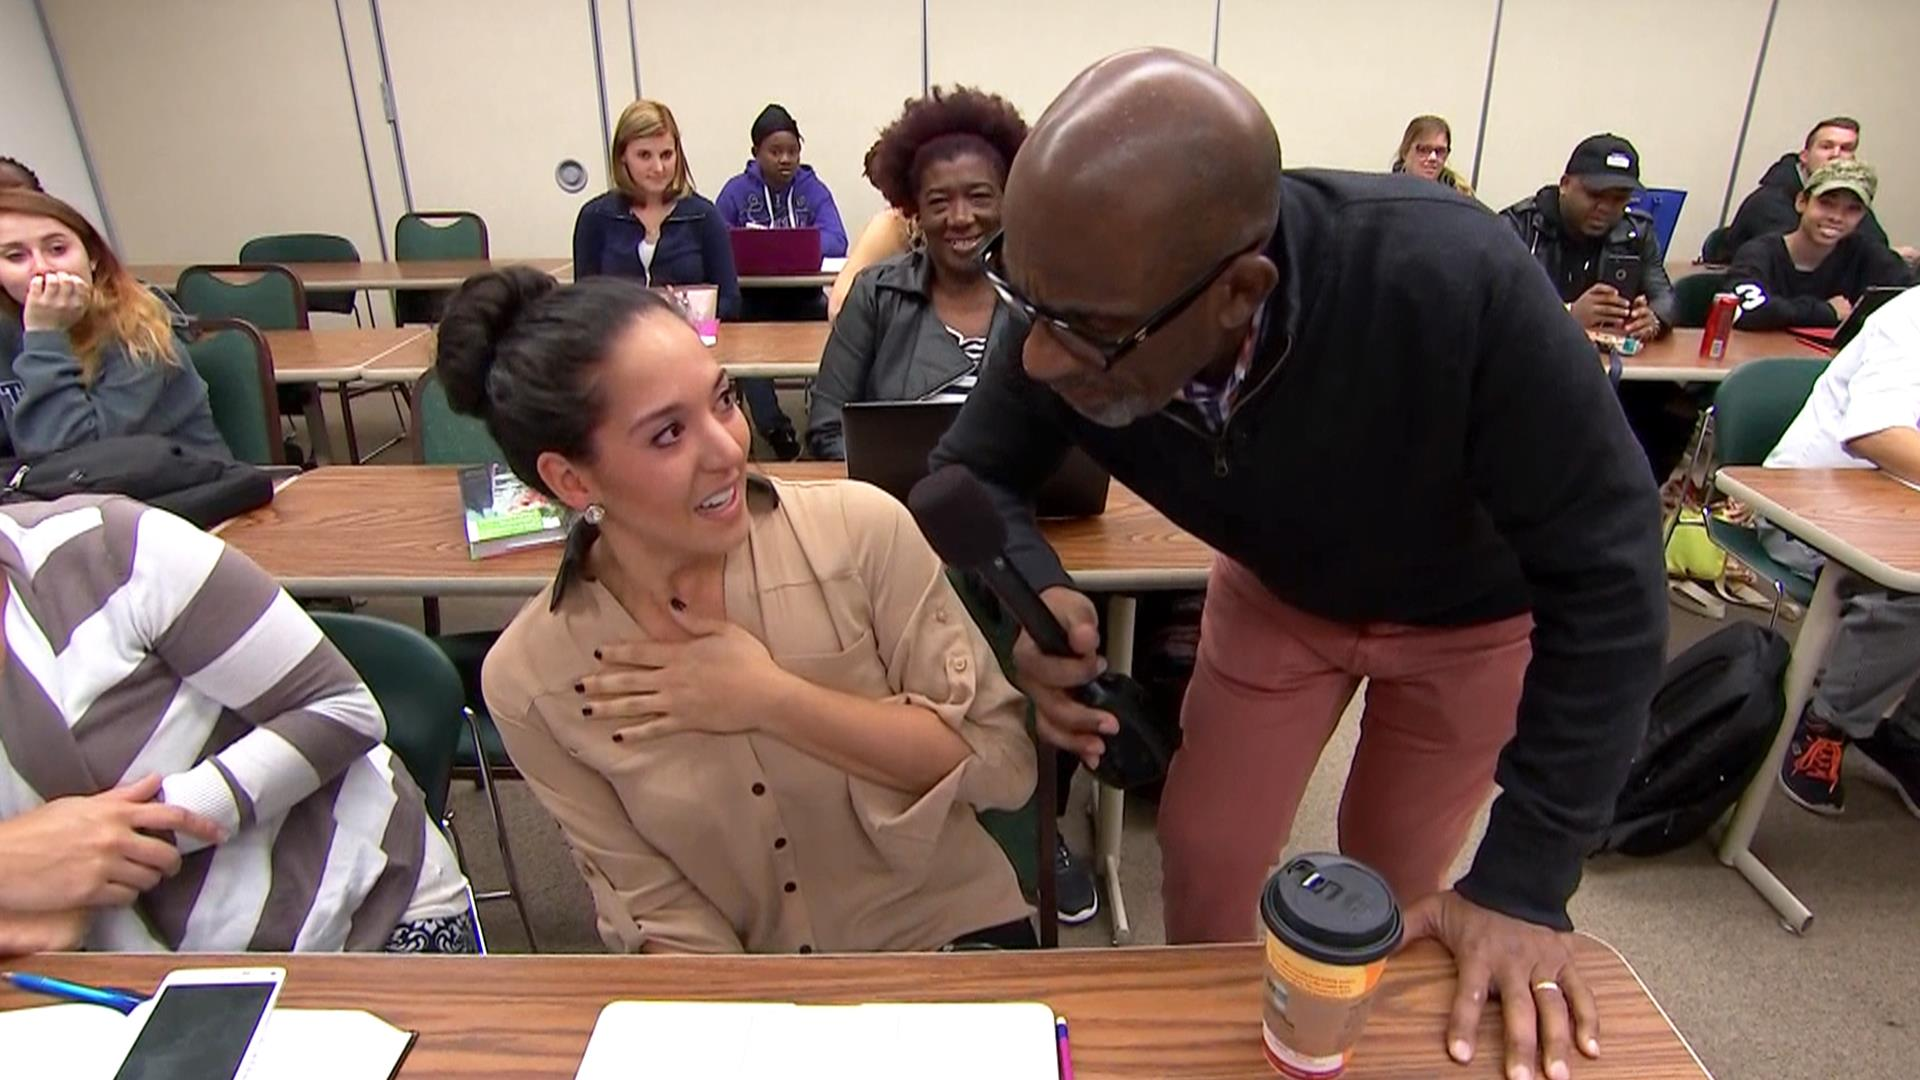 See culinary student get a big surprise during class